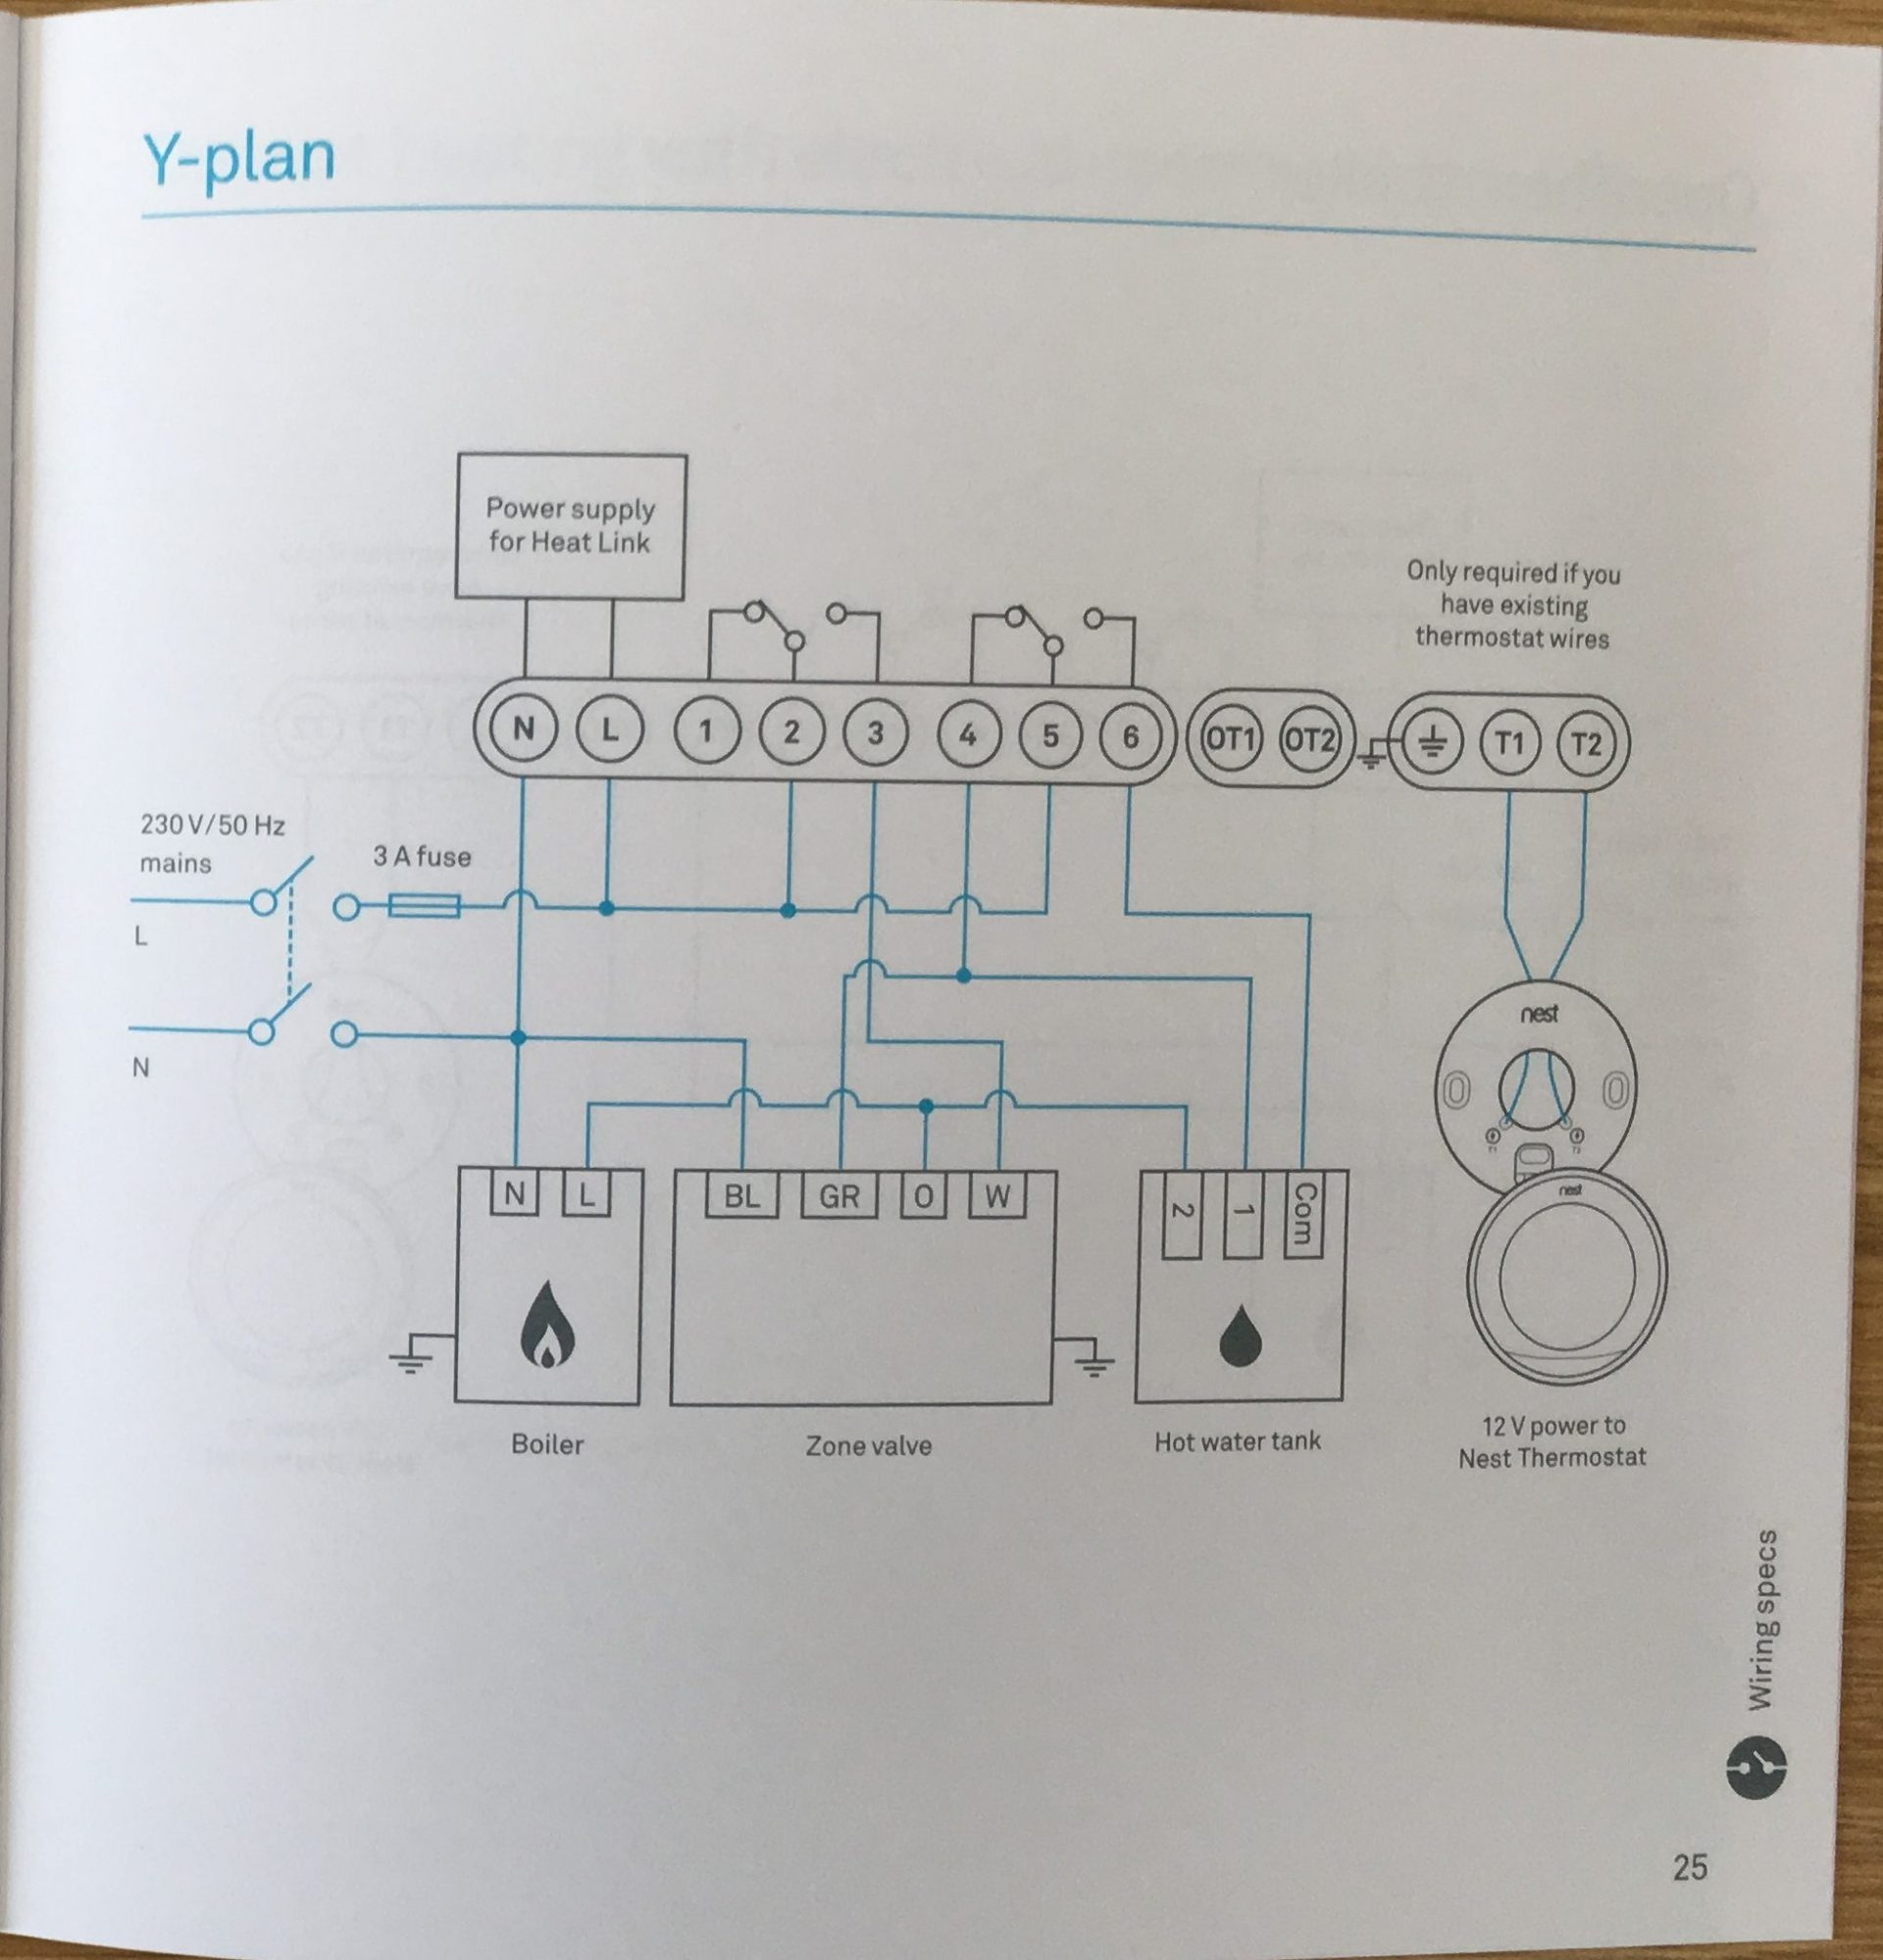 How To Install The Nest Learning Thermostat (3Rd Gen) In A Y-Plan - Y Plan Wiring Diagram Nest